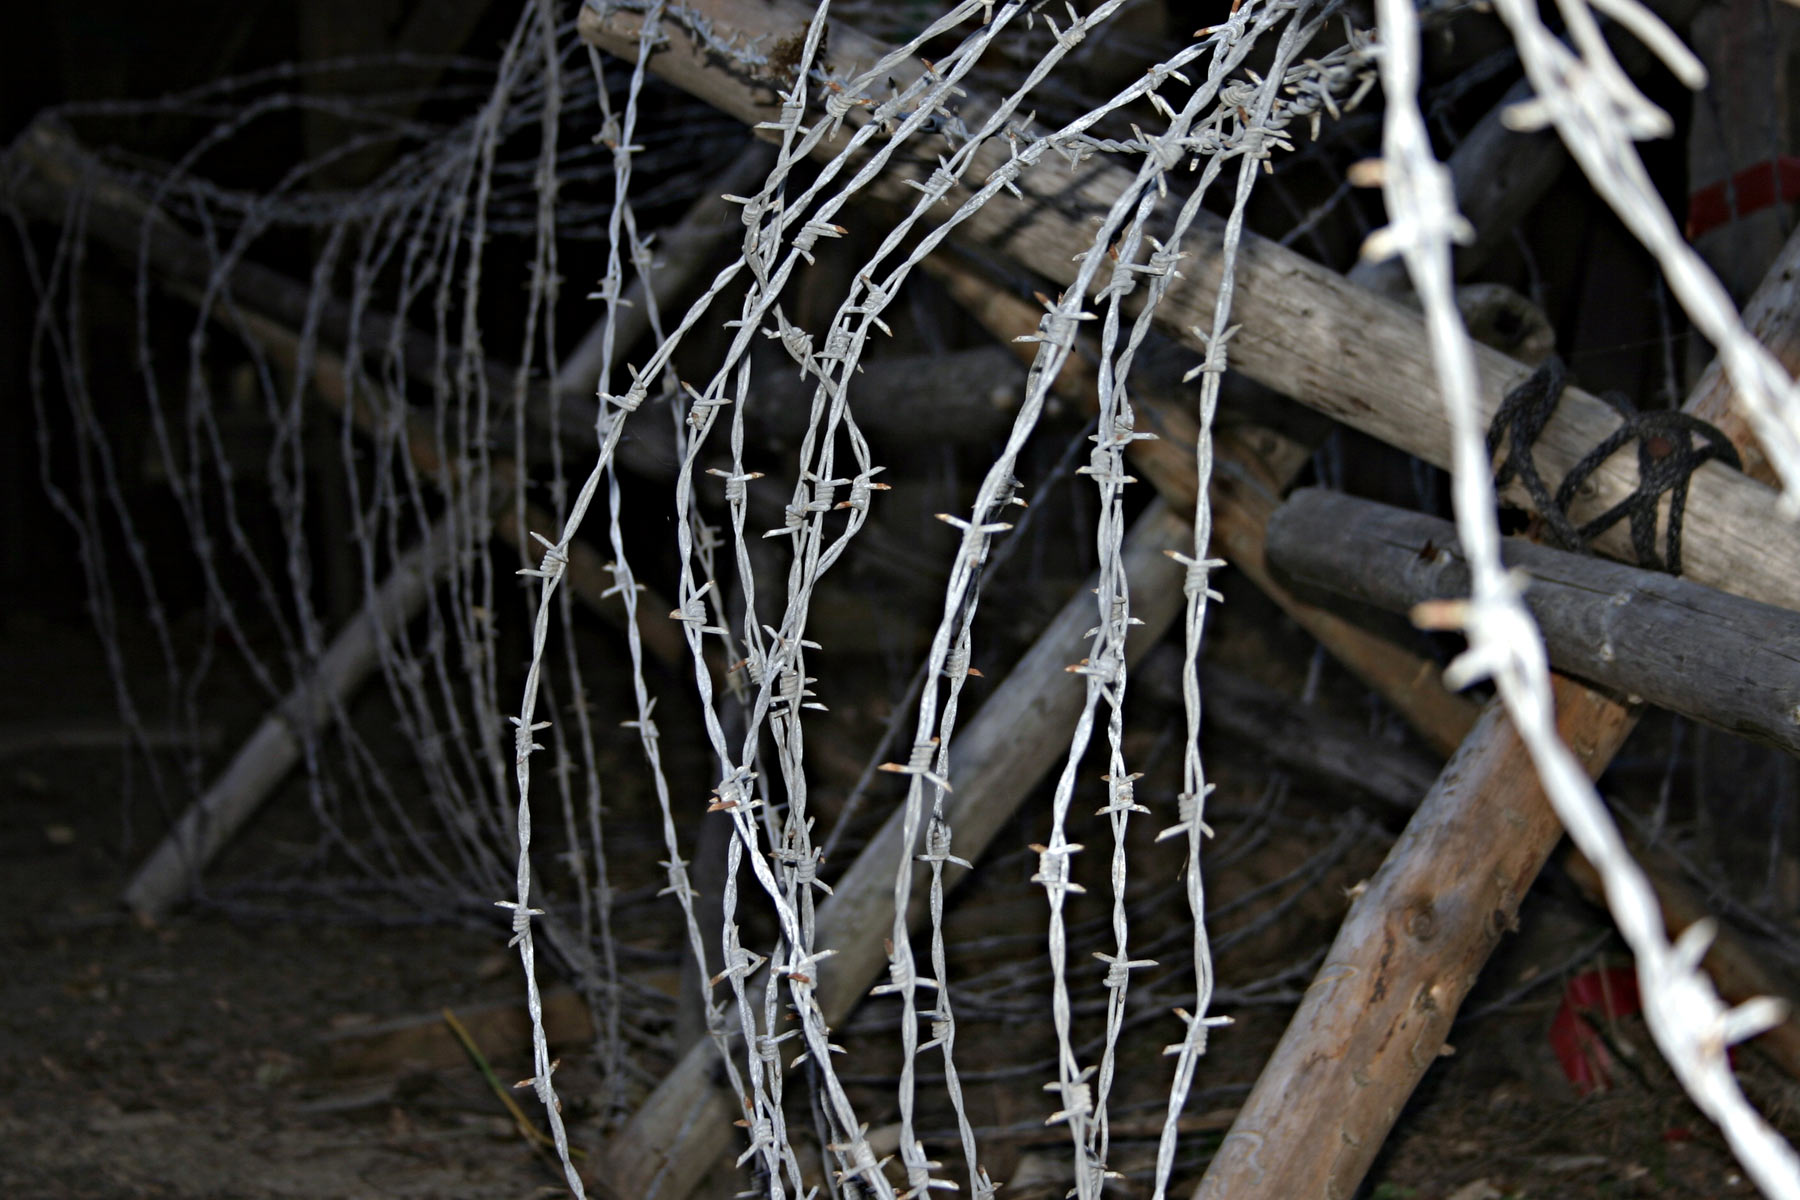 Barbed wire, Barb, Barbed, Barbs, Fence, HQ Photo